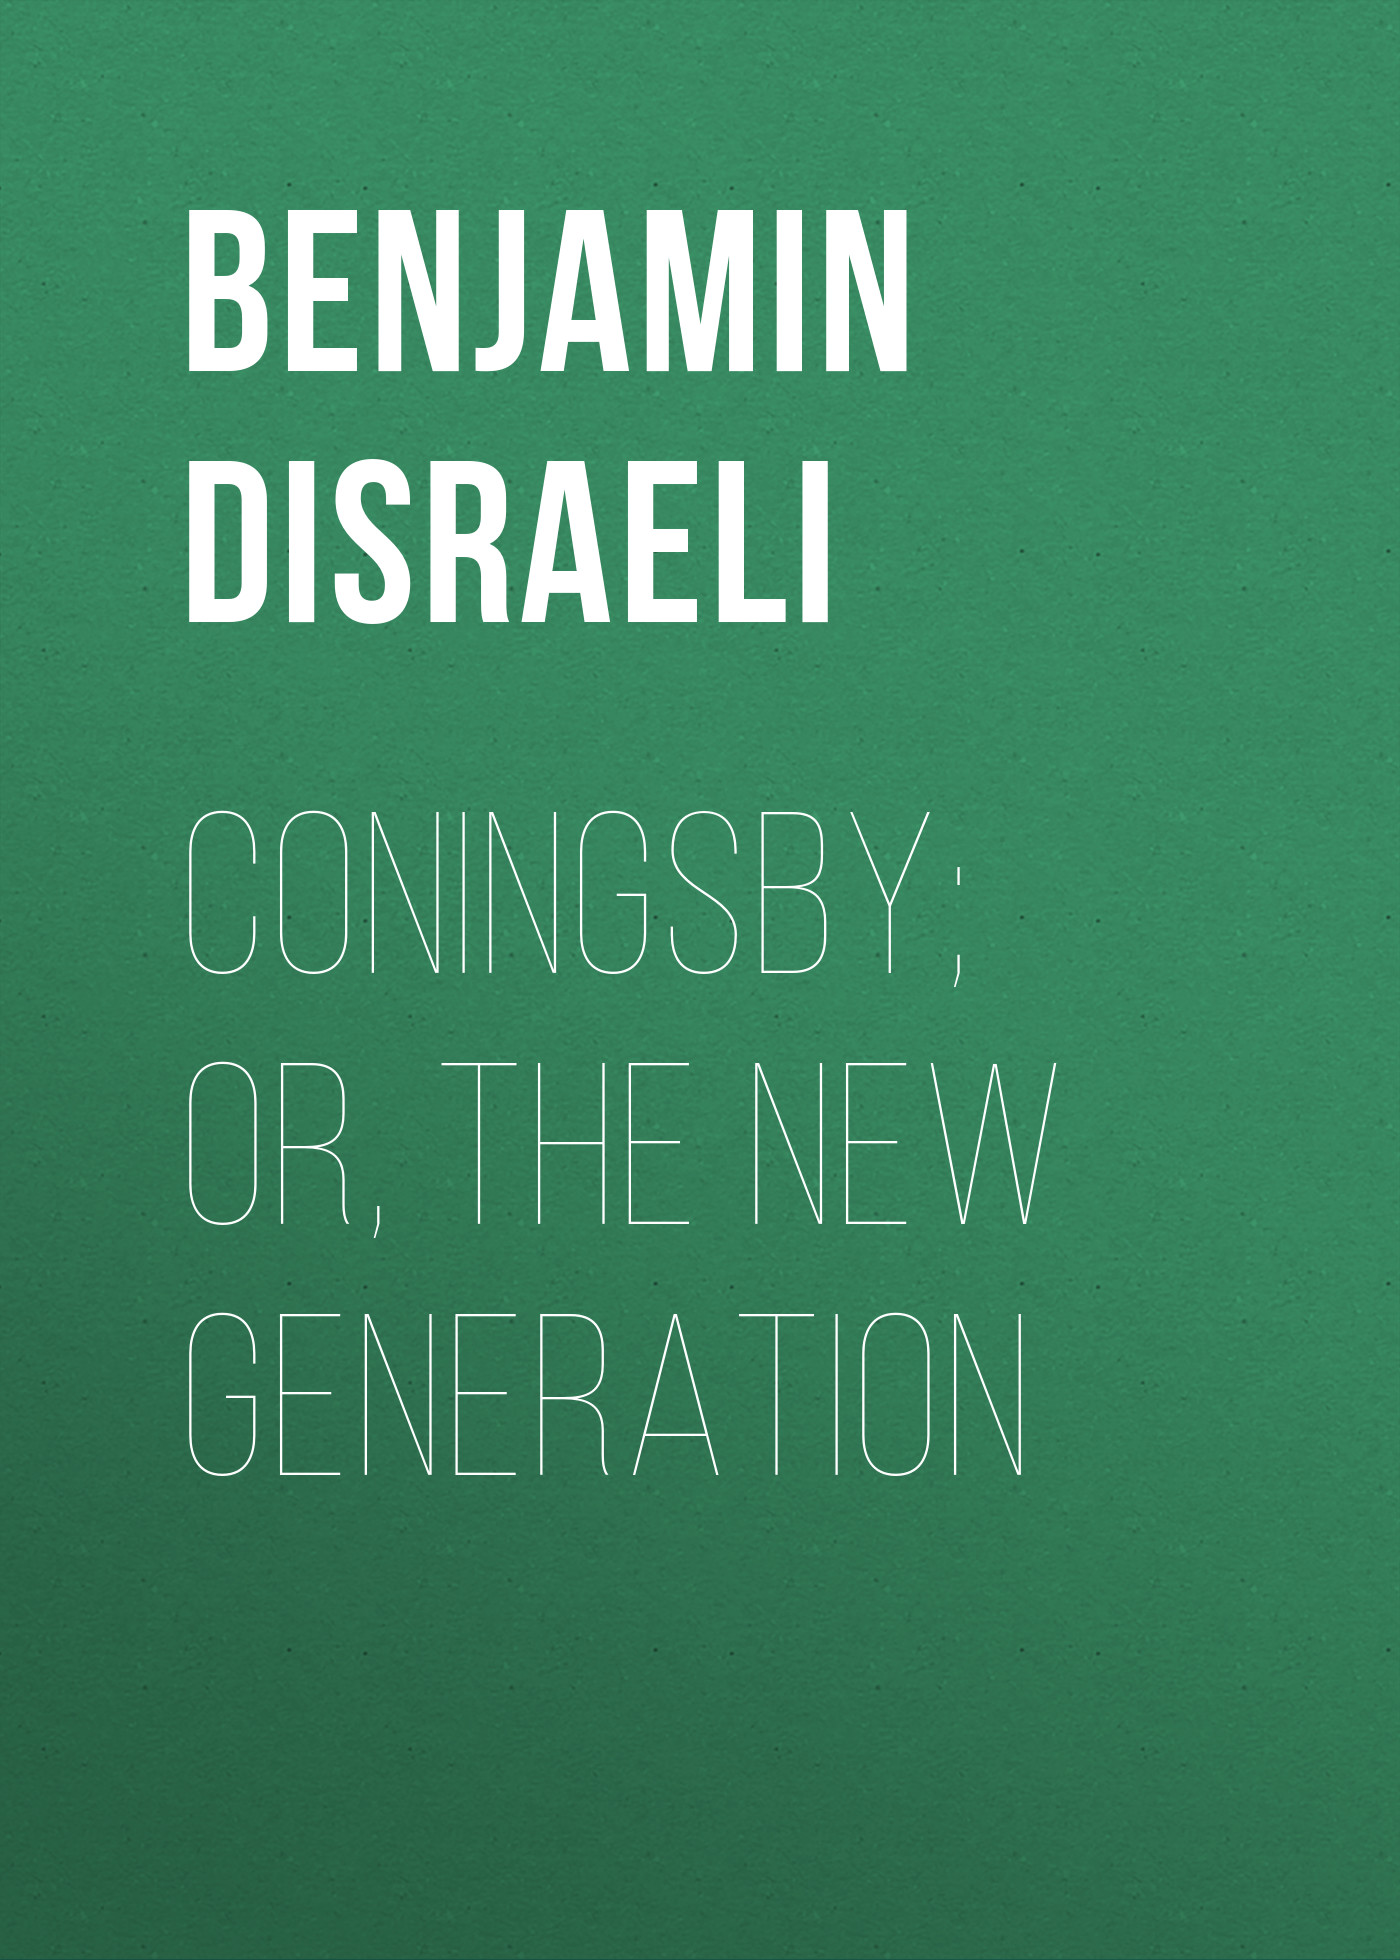 Benjamin Disraeli Coningsby; Or, The New Generation